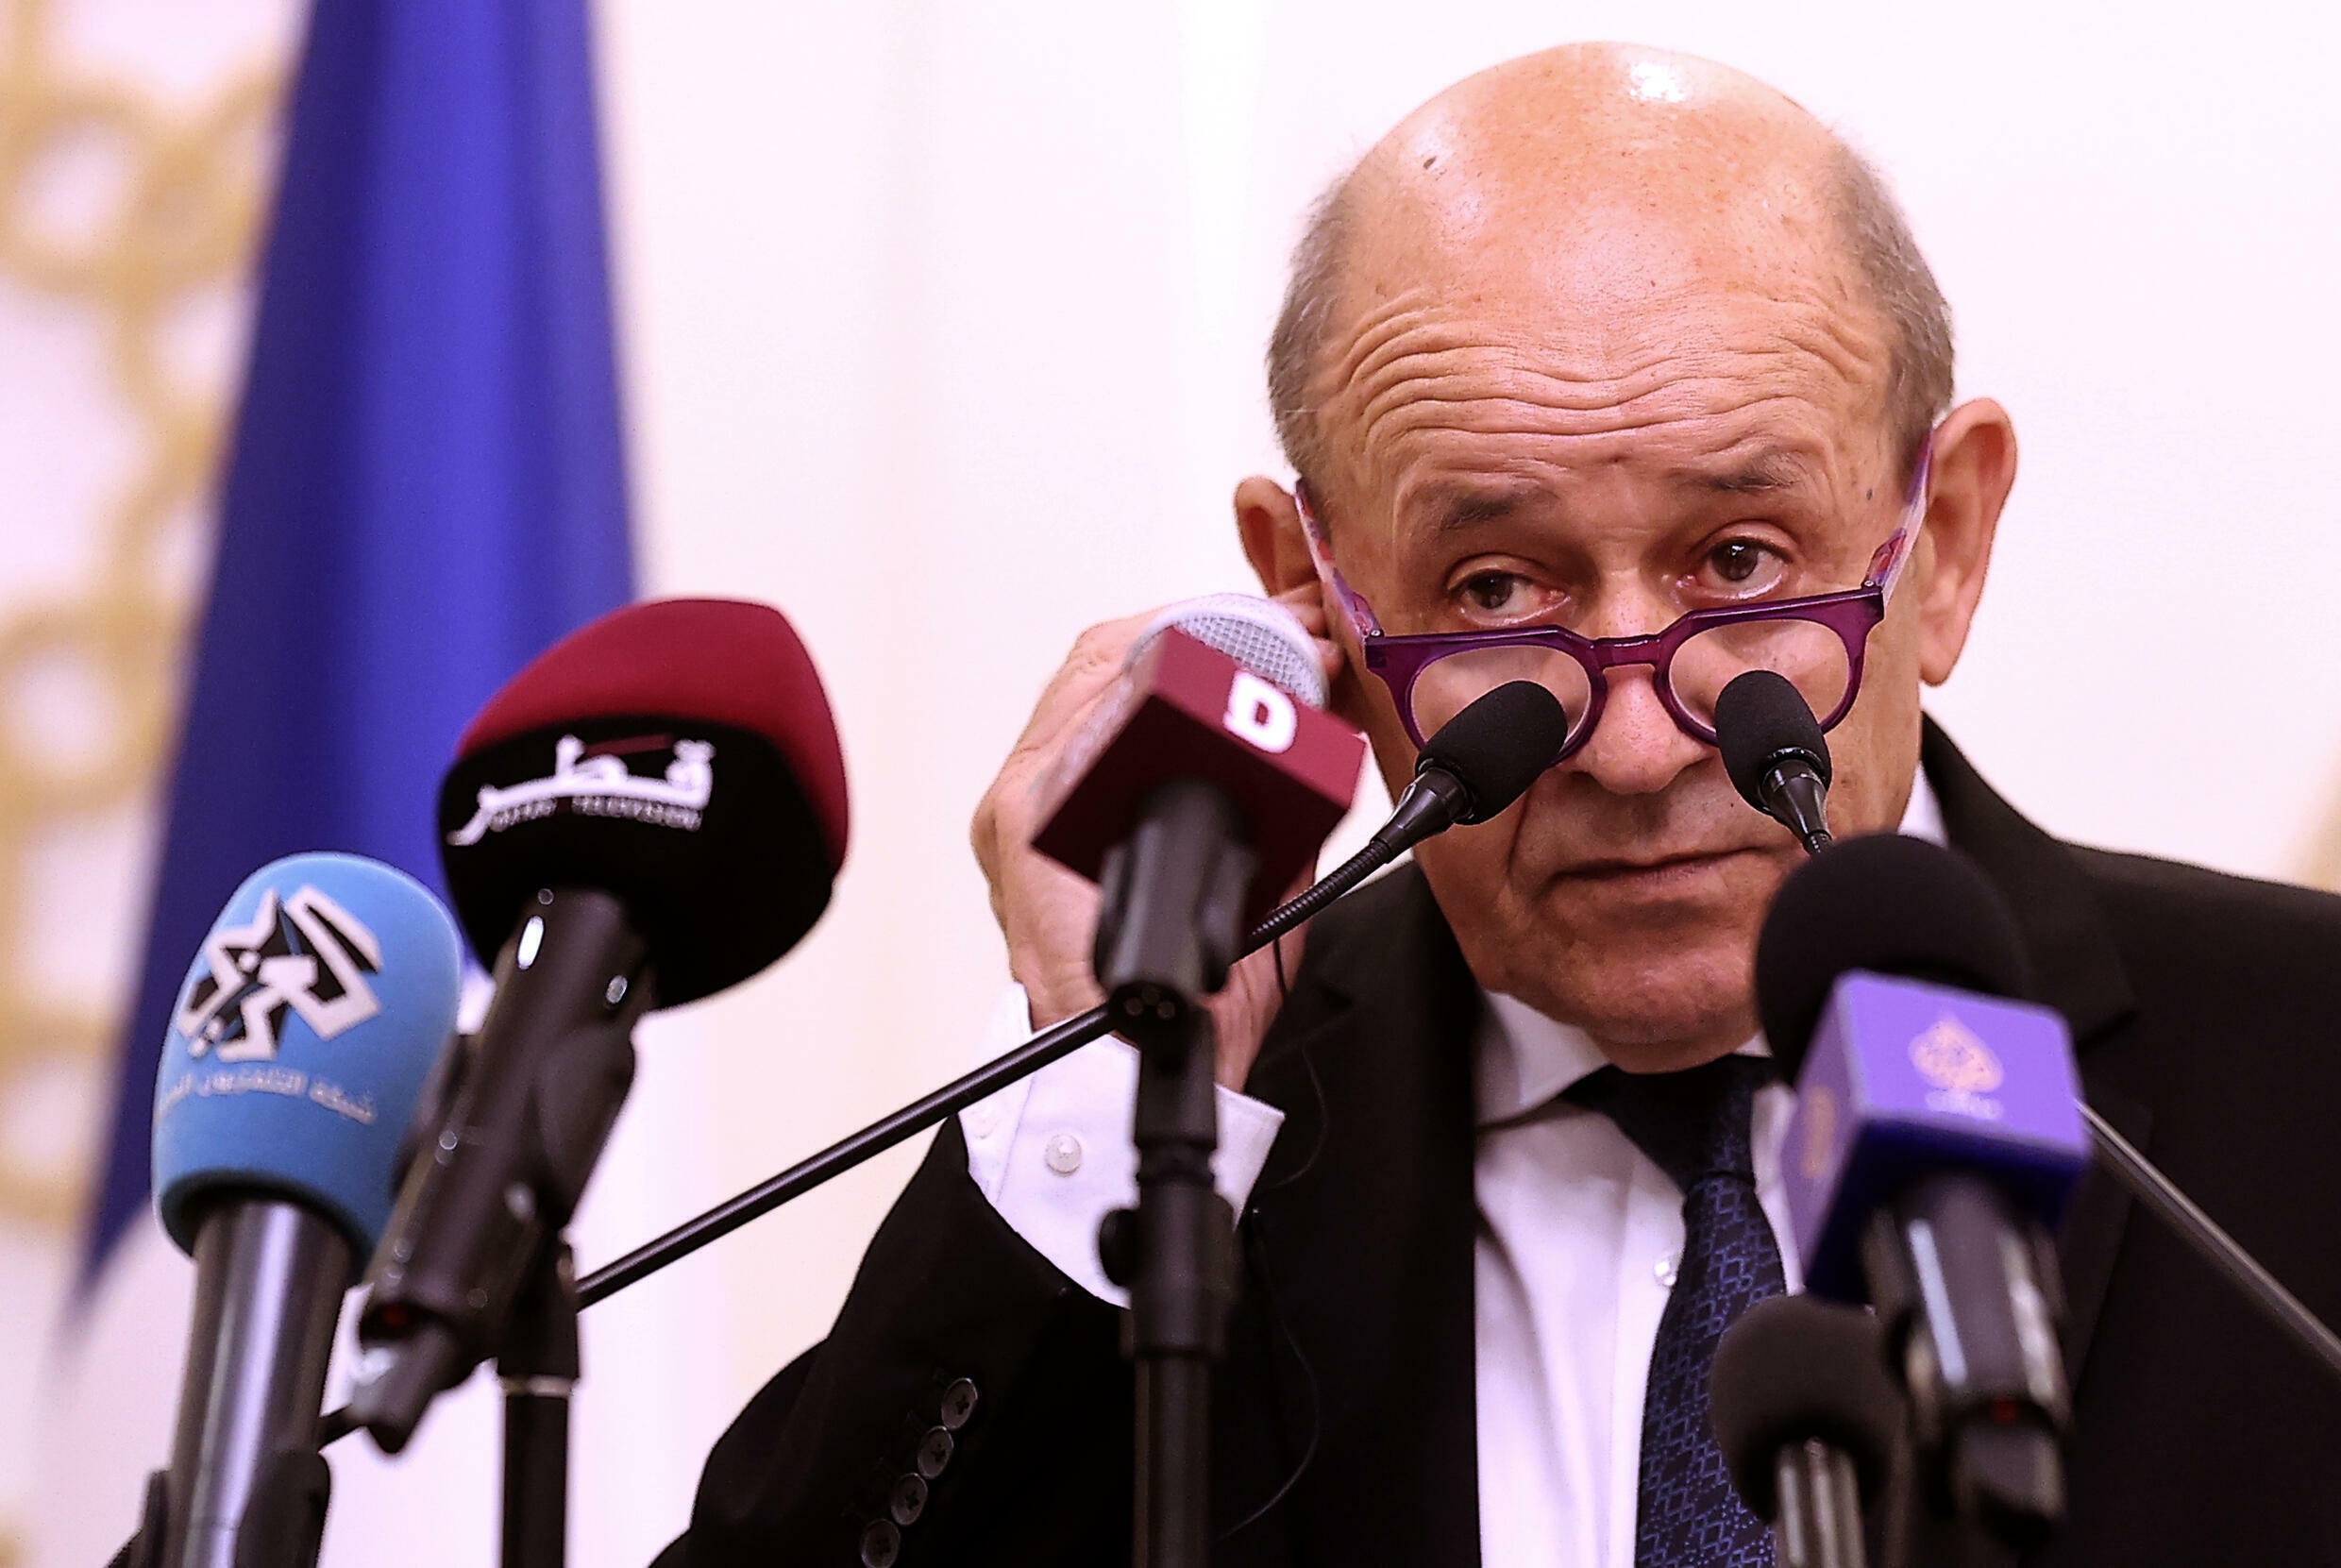 French Foreign Minister Jean-Yves Le Drian, who has voiced anger over Australia's scrapping of a submarine deal, speaks in Doha on September 13, 2021